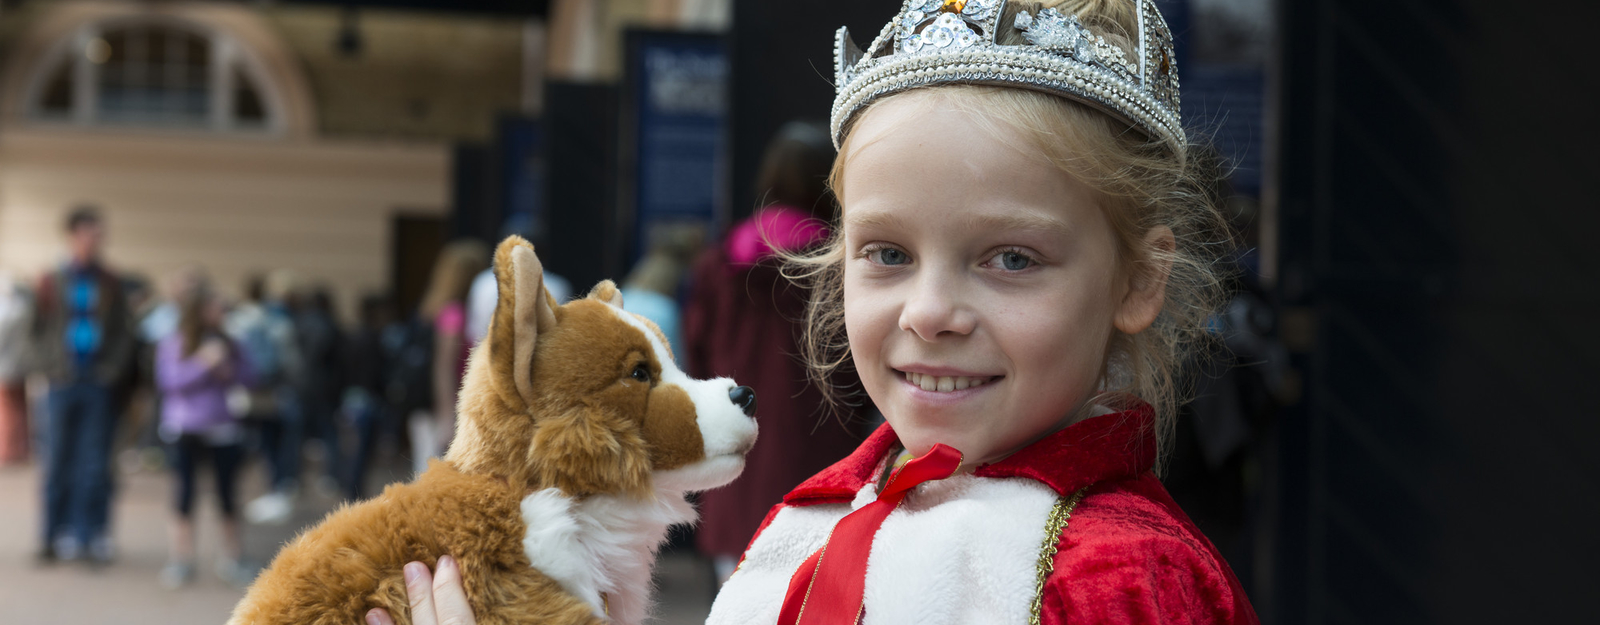 Girl dressed as a queen holding a toy Corgi